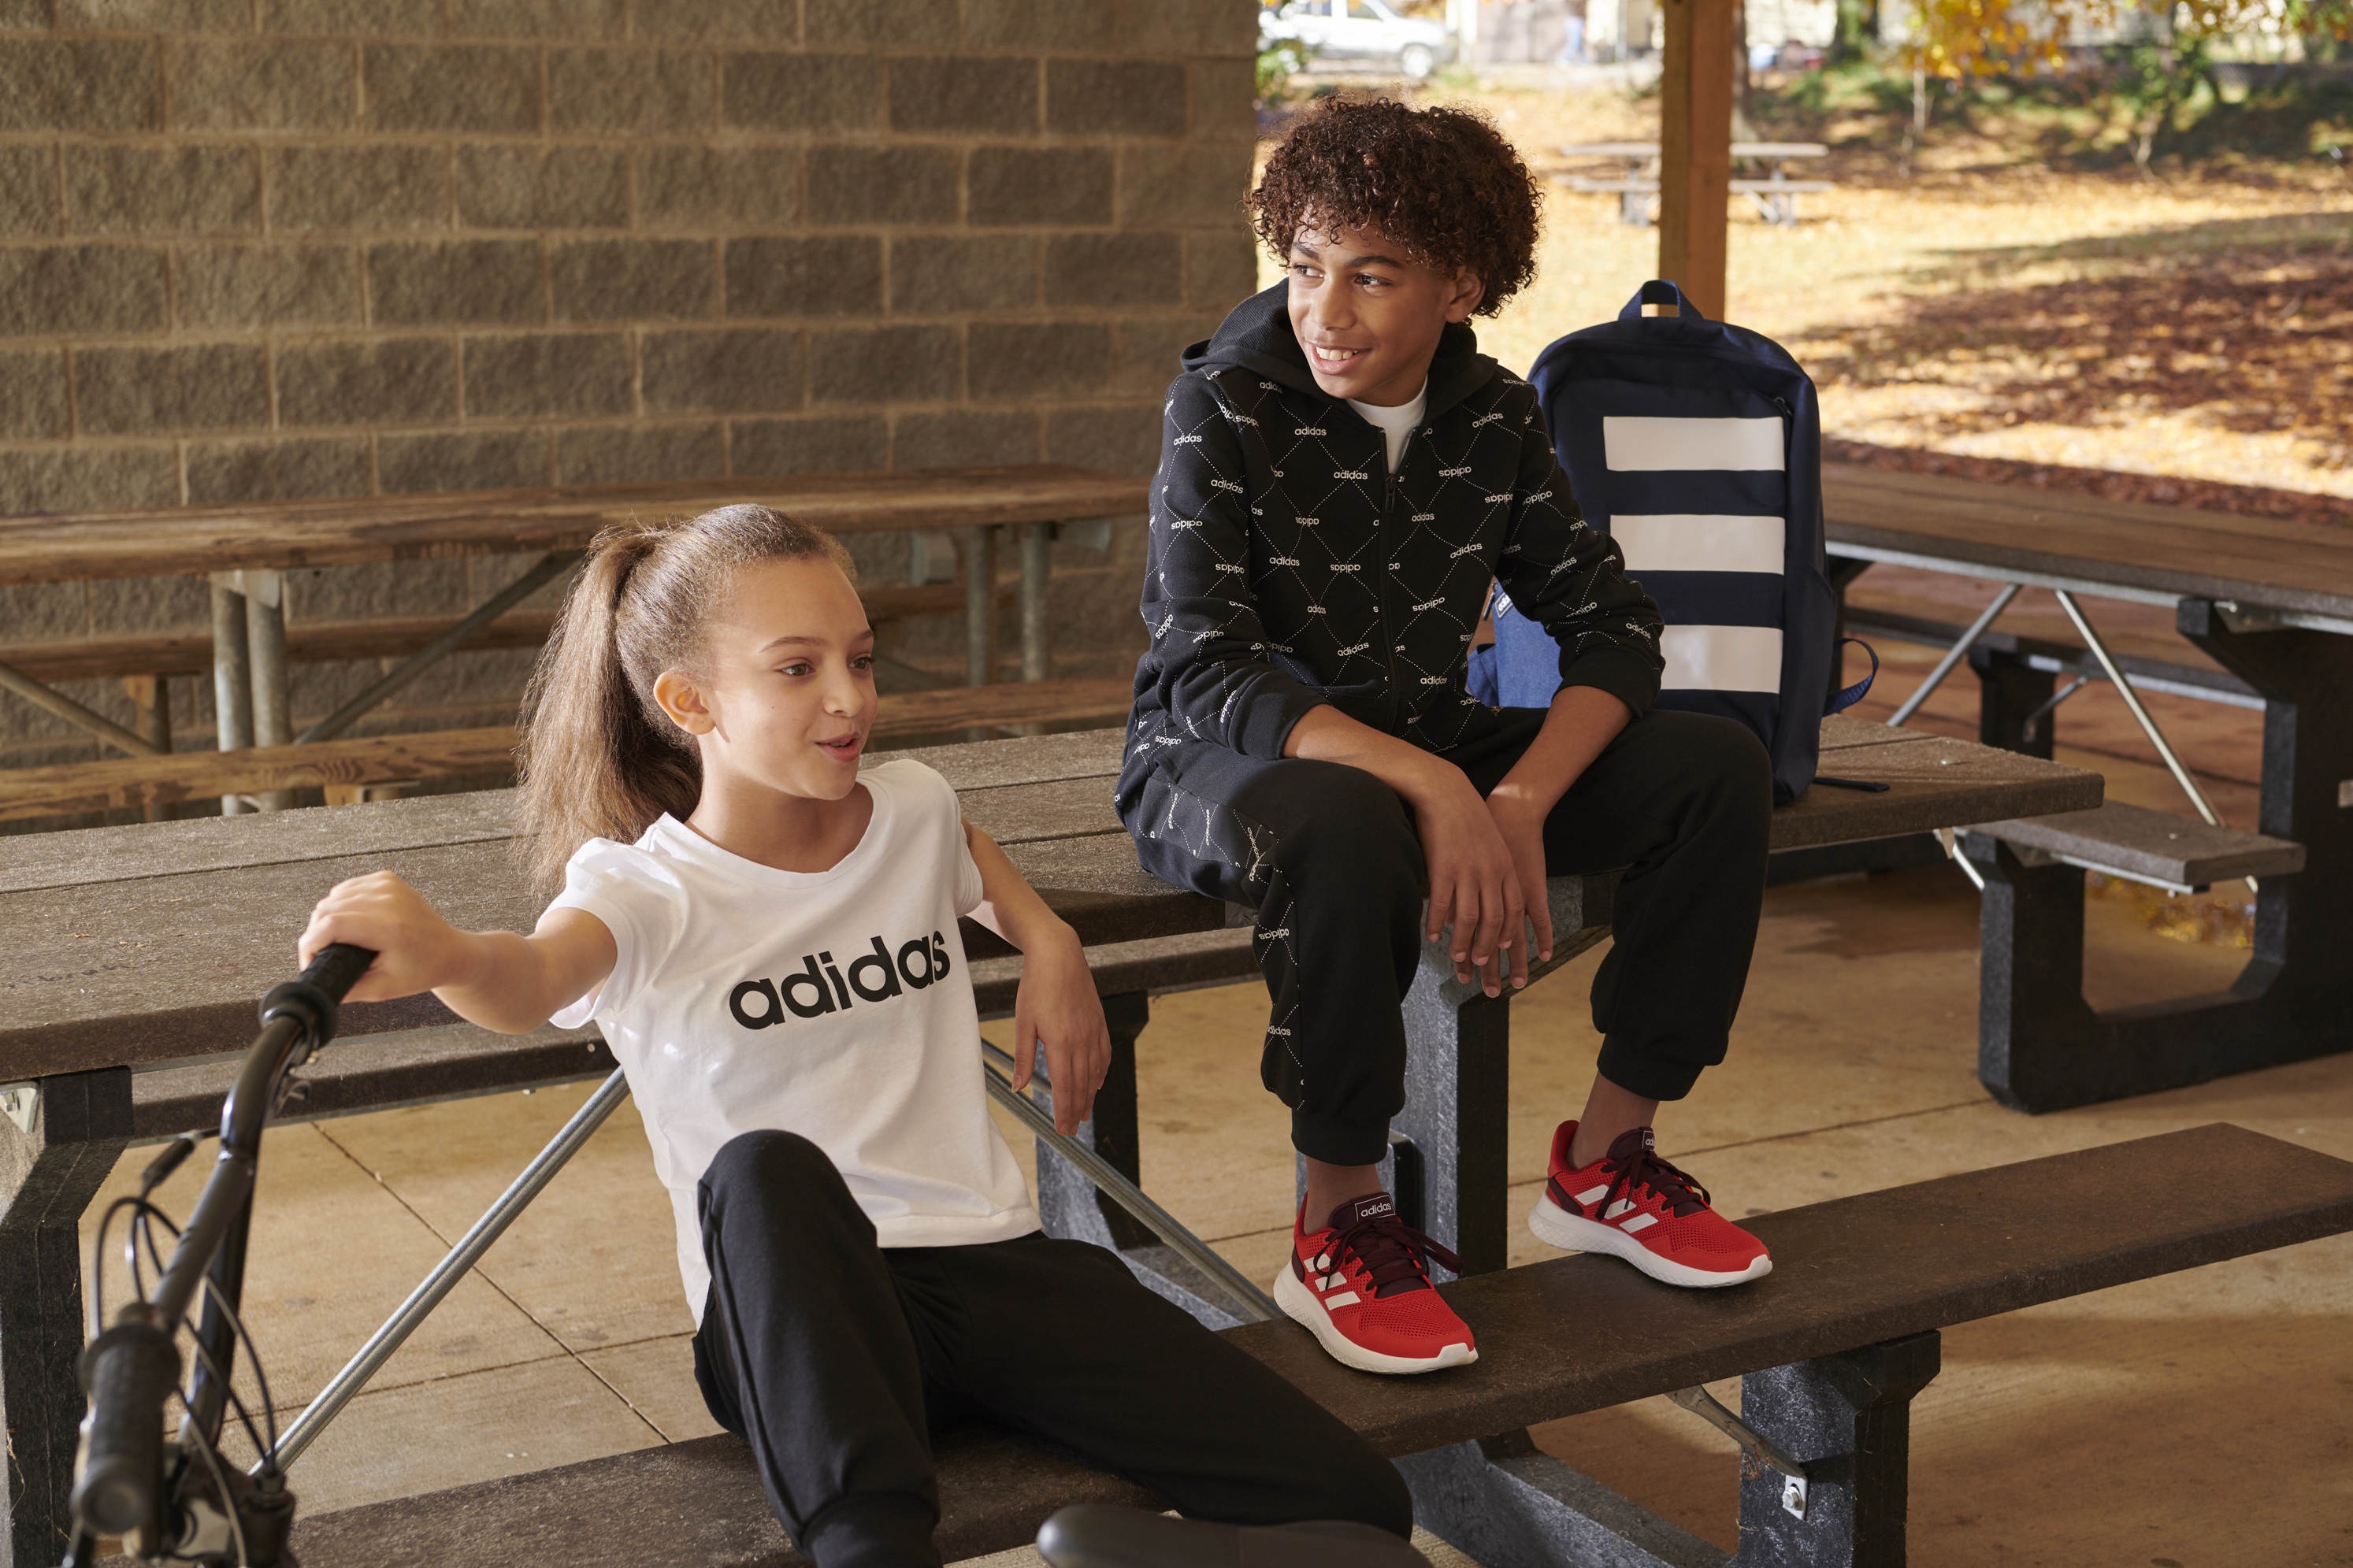 Kids in sportswear by Adidas